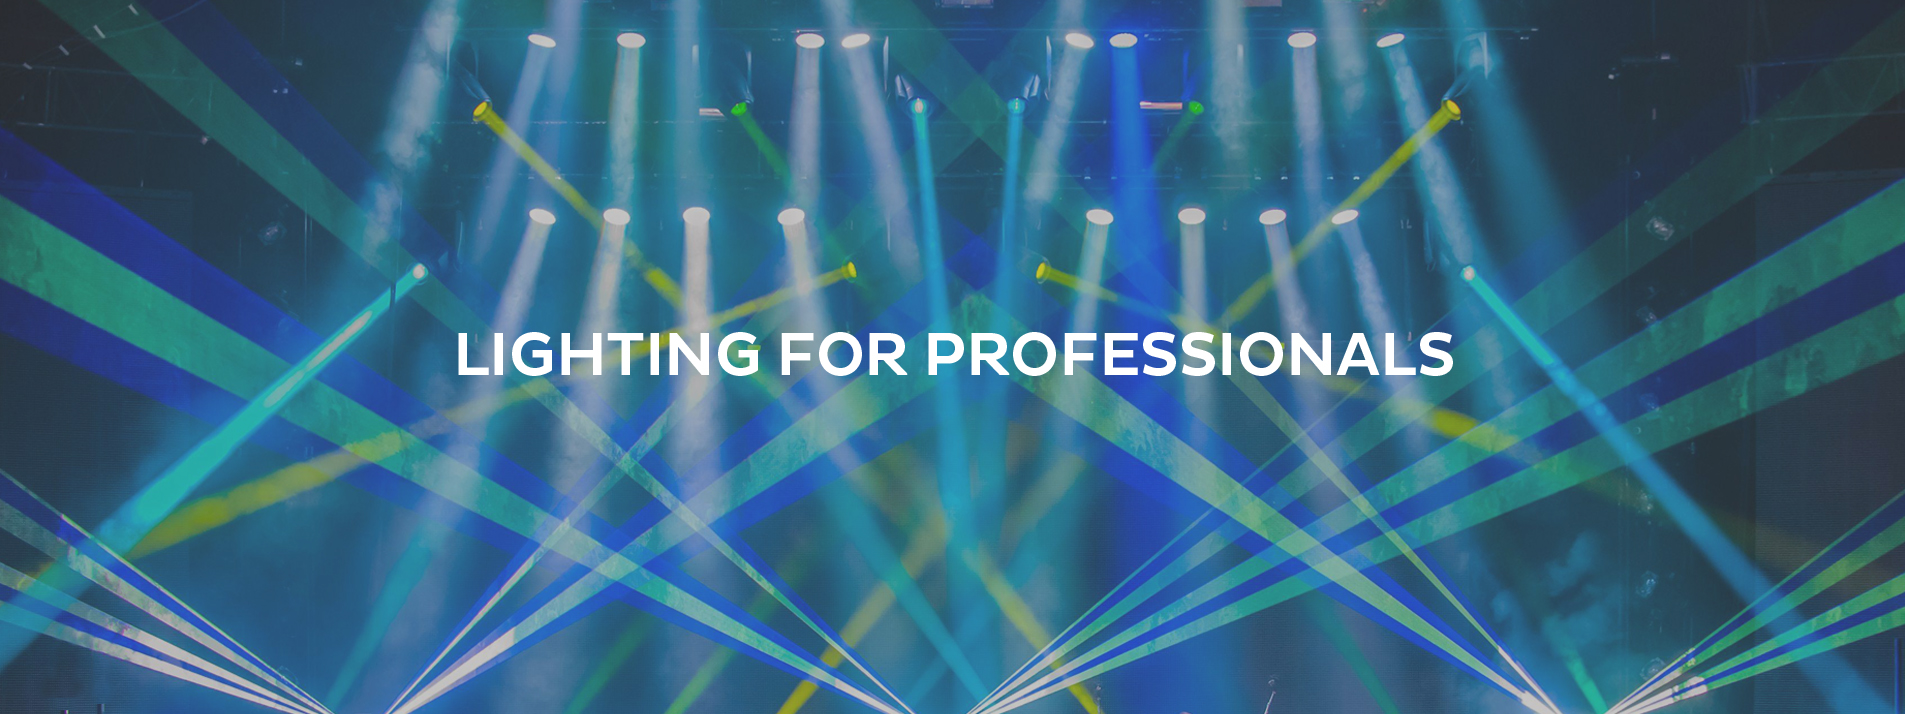 Lighting-for-professionals-